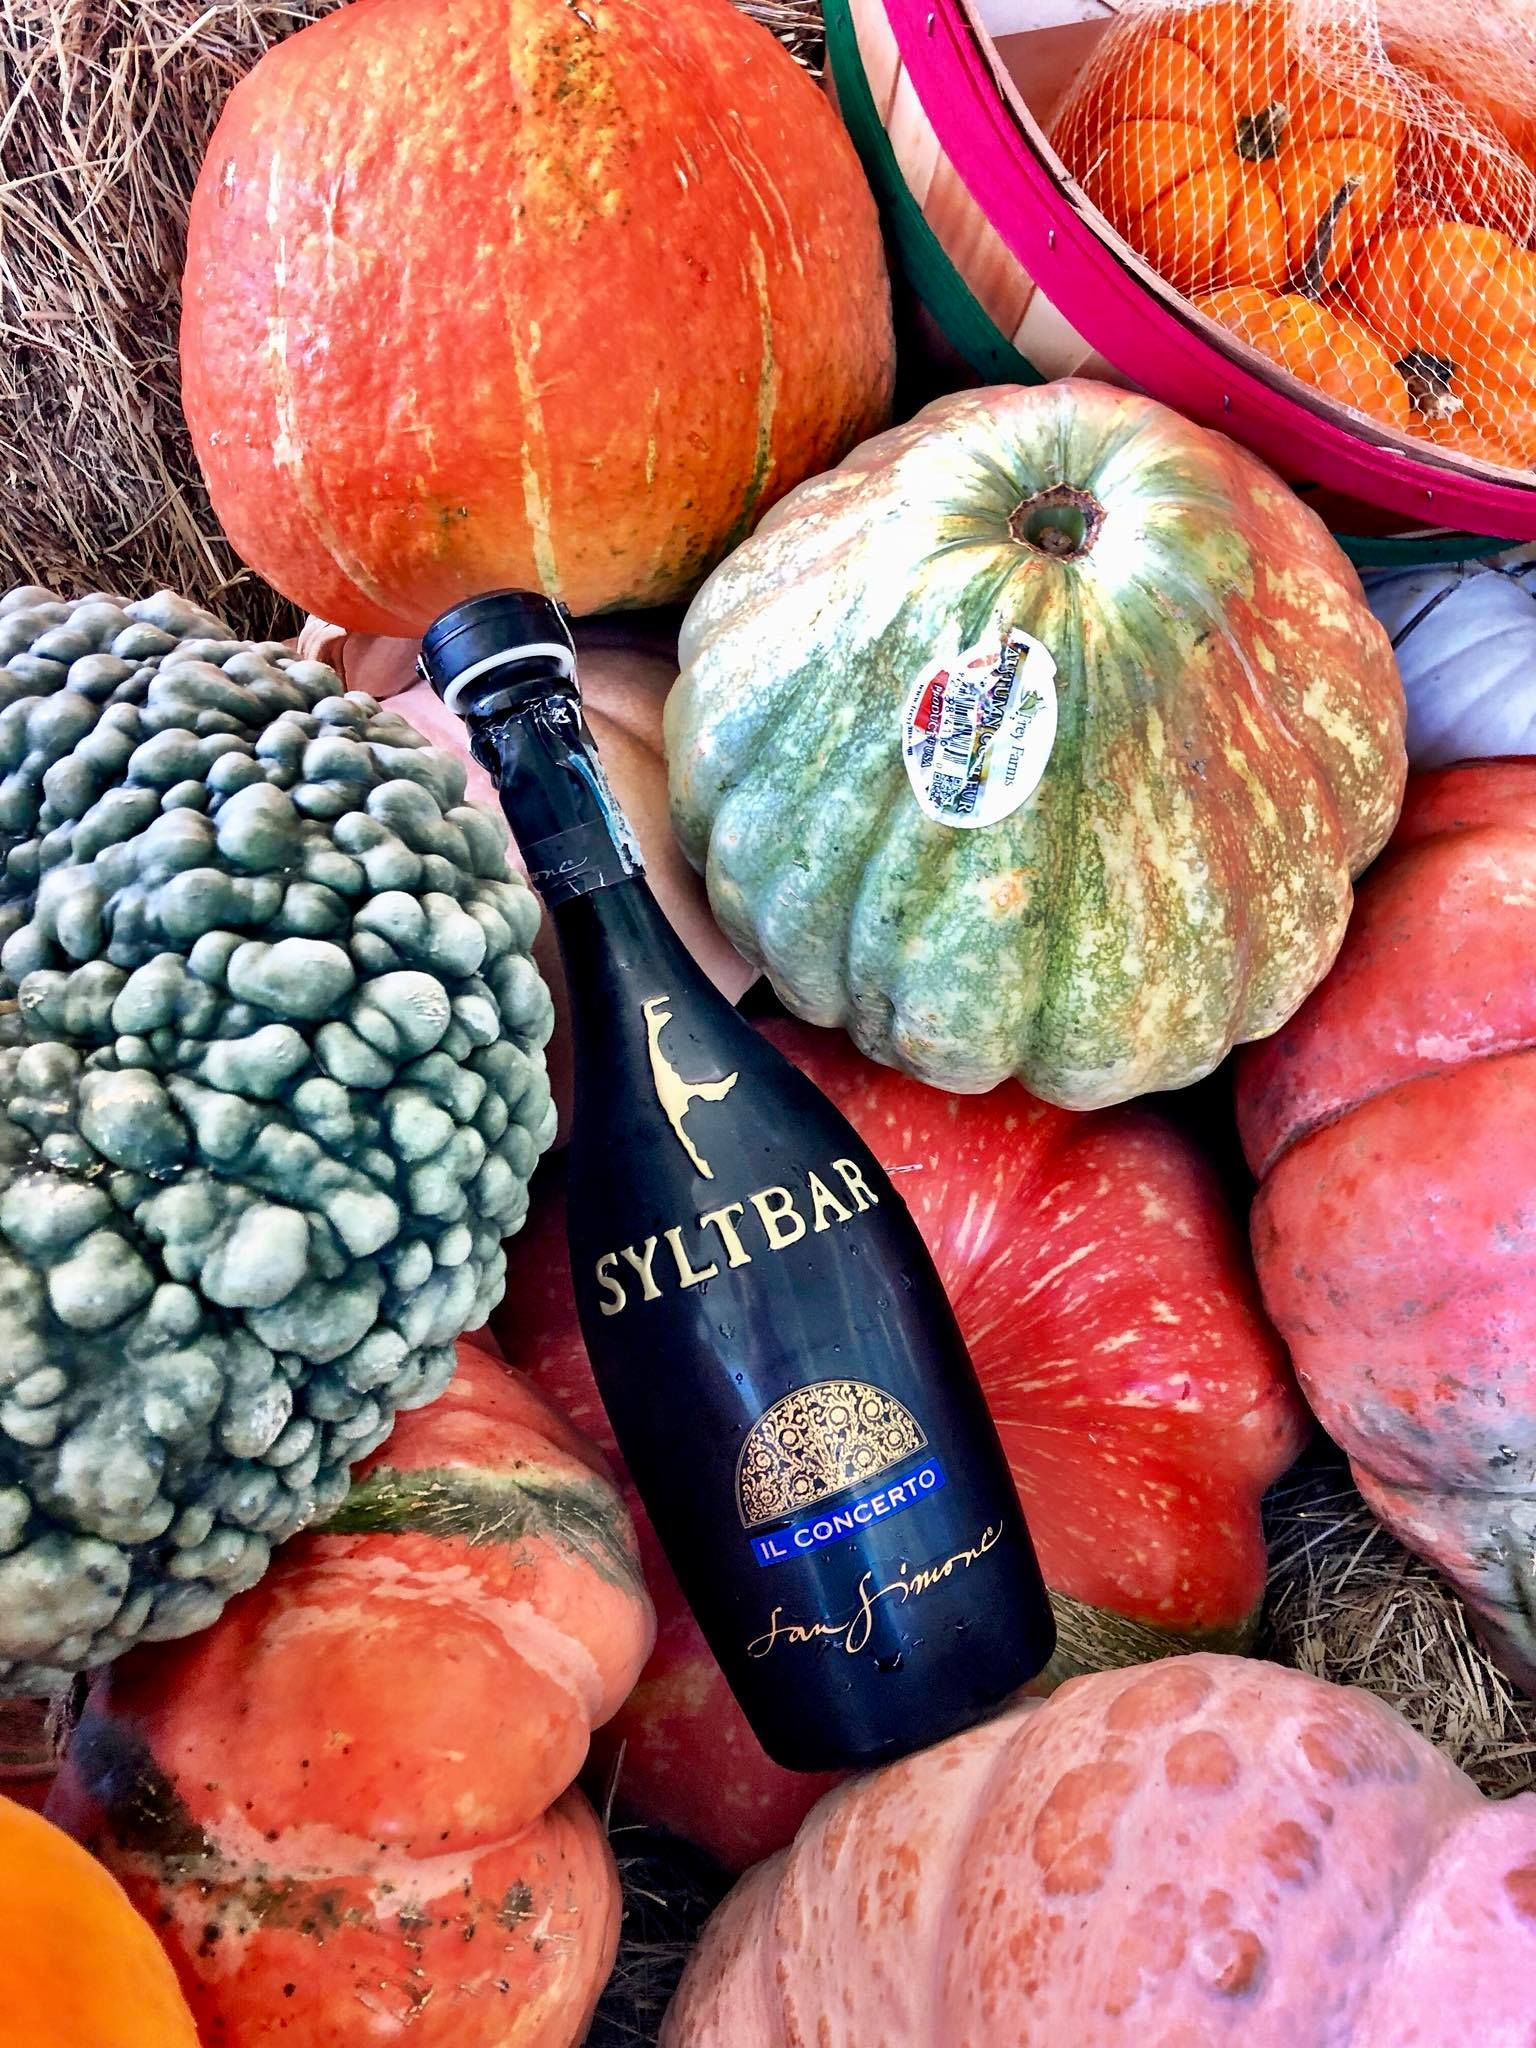 Fall With Syltbar Premium Prosecco Prosecco Whole Food Recipes Whole Foods Market